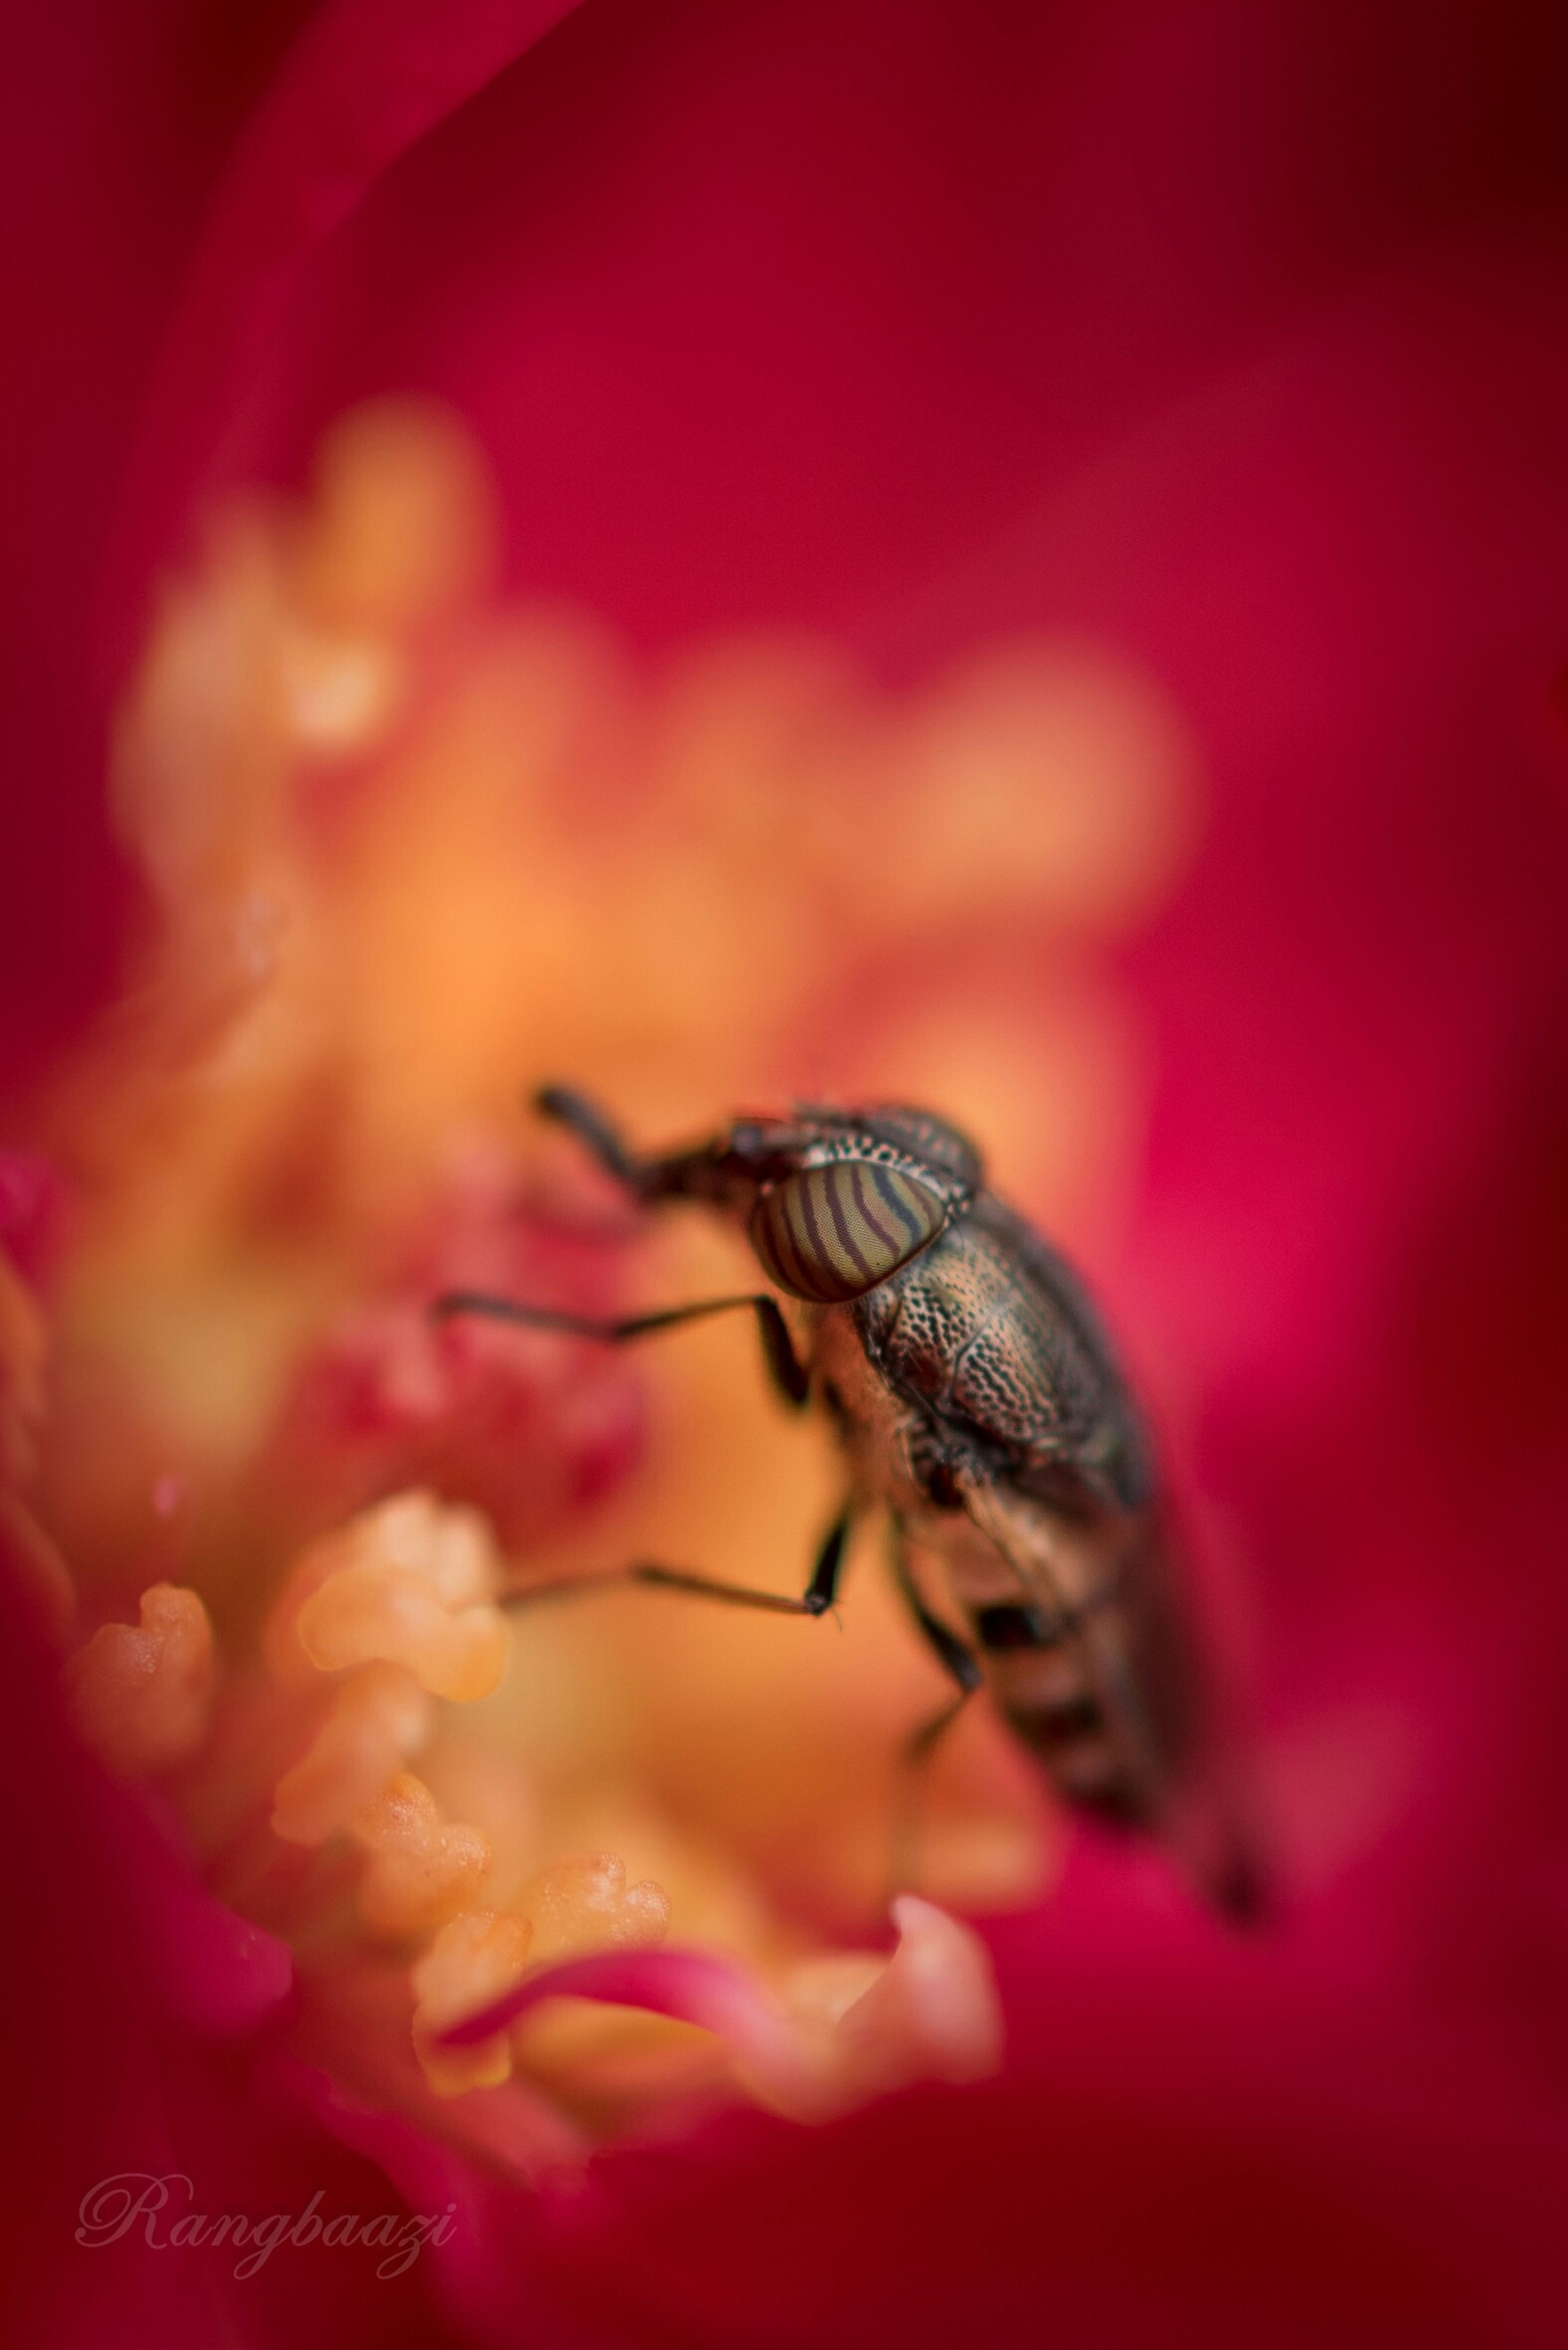 animal themes, one animal, animals in the wild, wildlife, insect, flower, red, close-up, pink color, selective focus, focus on foreground, petal, nature, beauty in nature, freshness, pollination, bee, fragility, outdoors, day